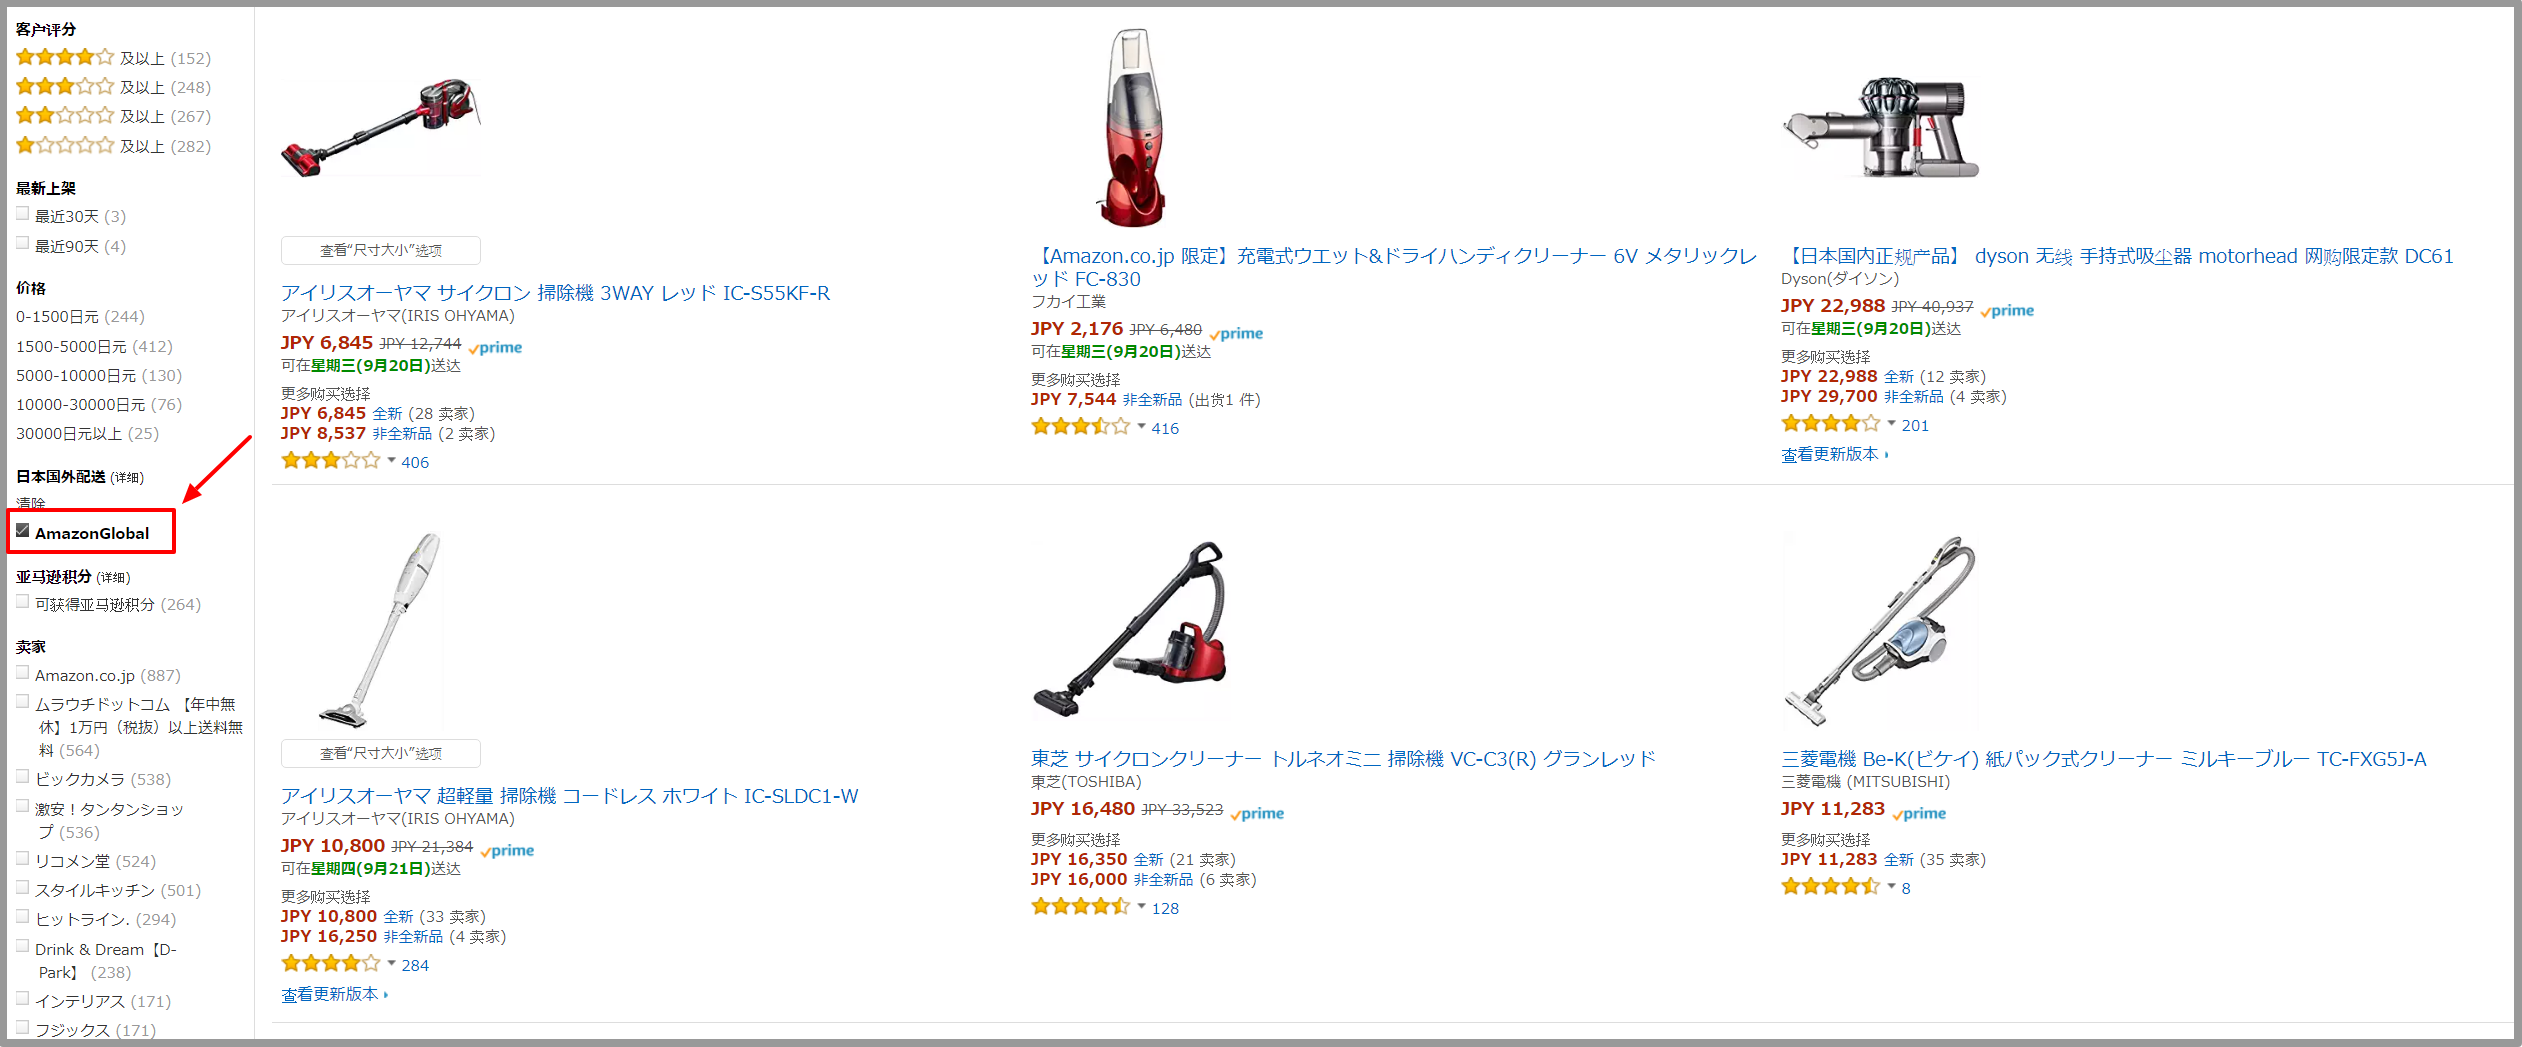 Amazon.co.jp AmazonGlobal